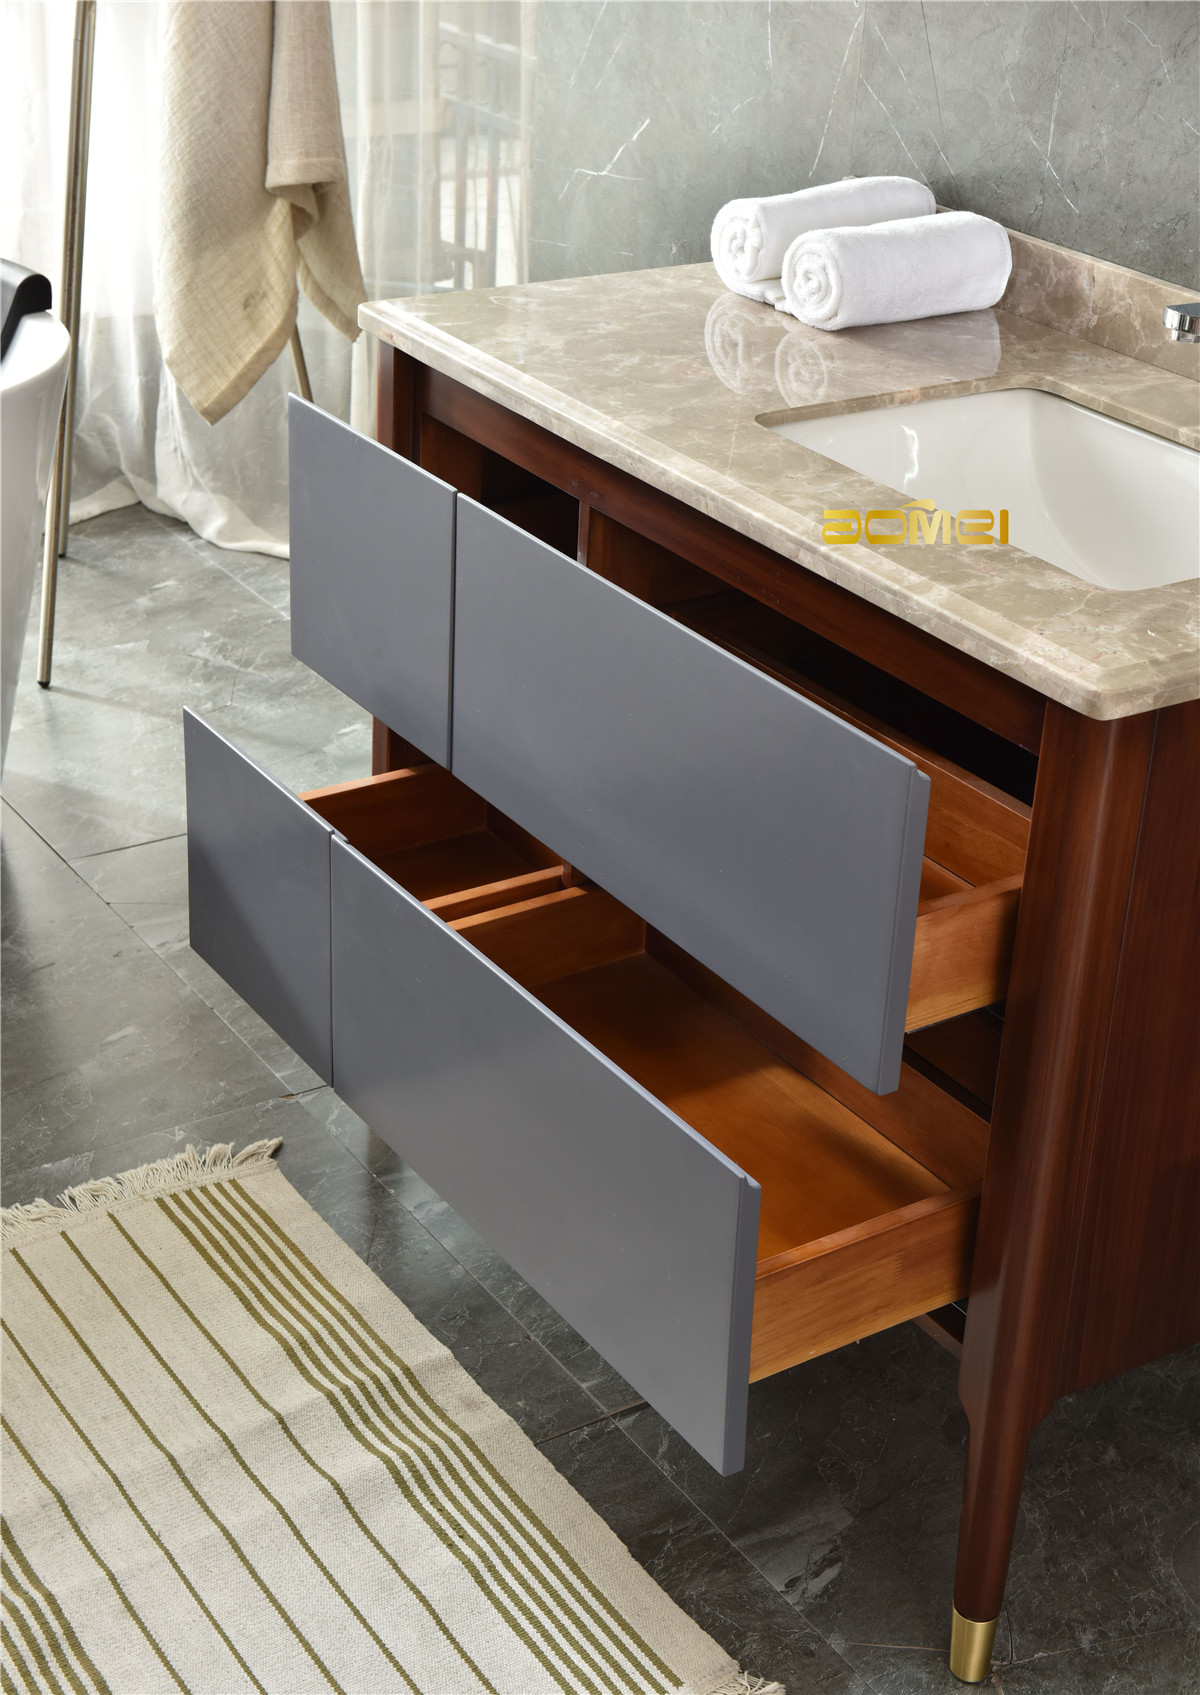 What do you need to know about solid wood bathroom cabinets